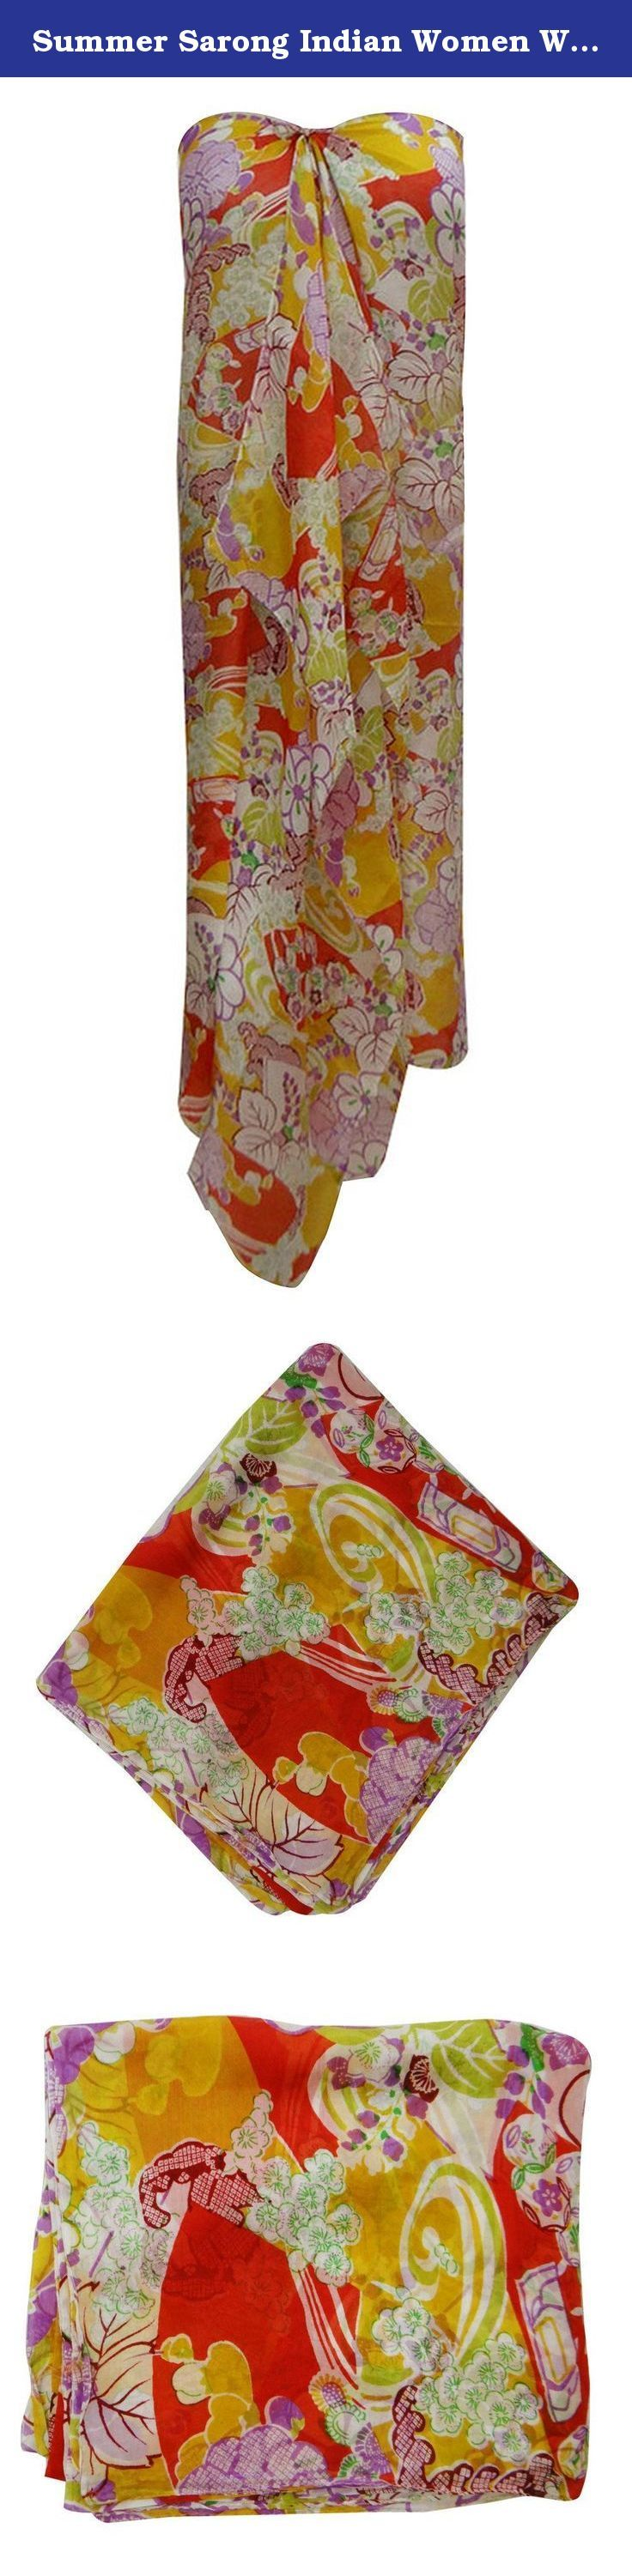 """Summer Sarong Indian Women Wear Stole Pure Silk Beach Cover-Up Scarves 70"""" X 40"""". * Pure silk fabric rectangular summer wear sarong scarf / sarong. * SHAPE: Rectangle. * Suitable for all age group of women and teenagers. * Perfect for any formal or informal occasion. * This scarf can be worn as sarong, wrap and swimwear. Size: 70"""" X 40"""" Inches (approx) ."""